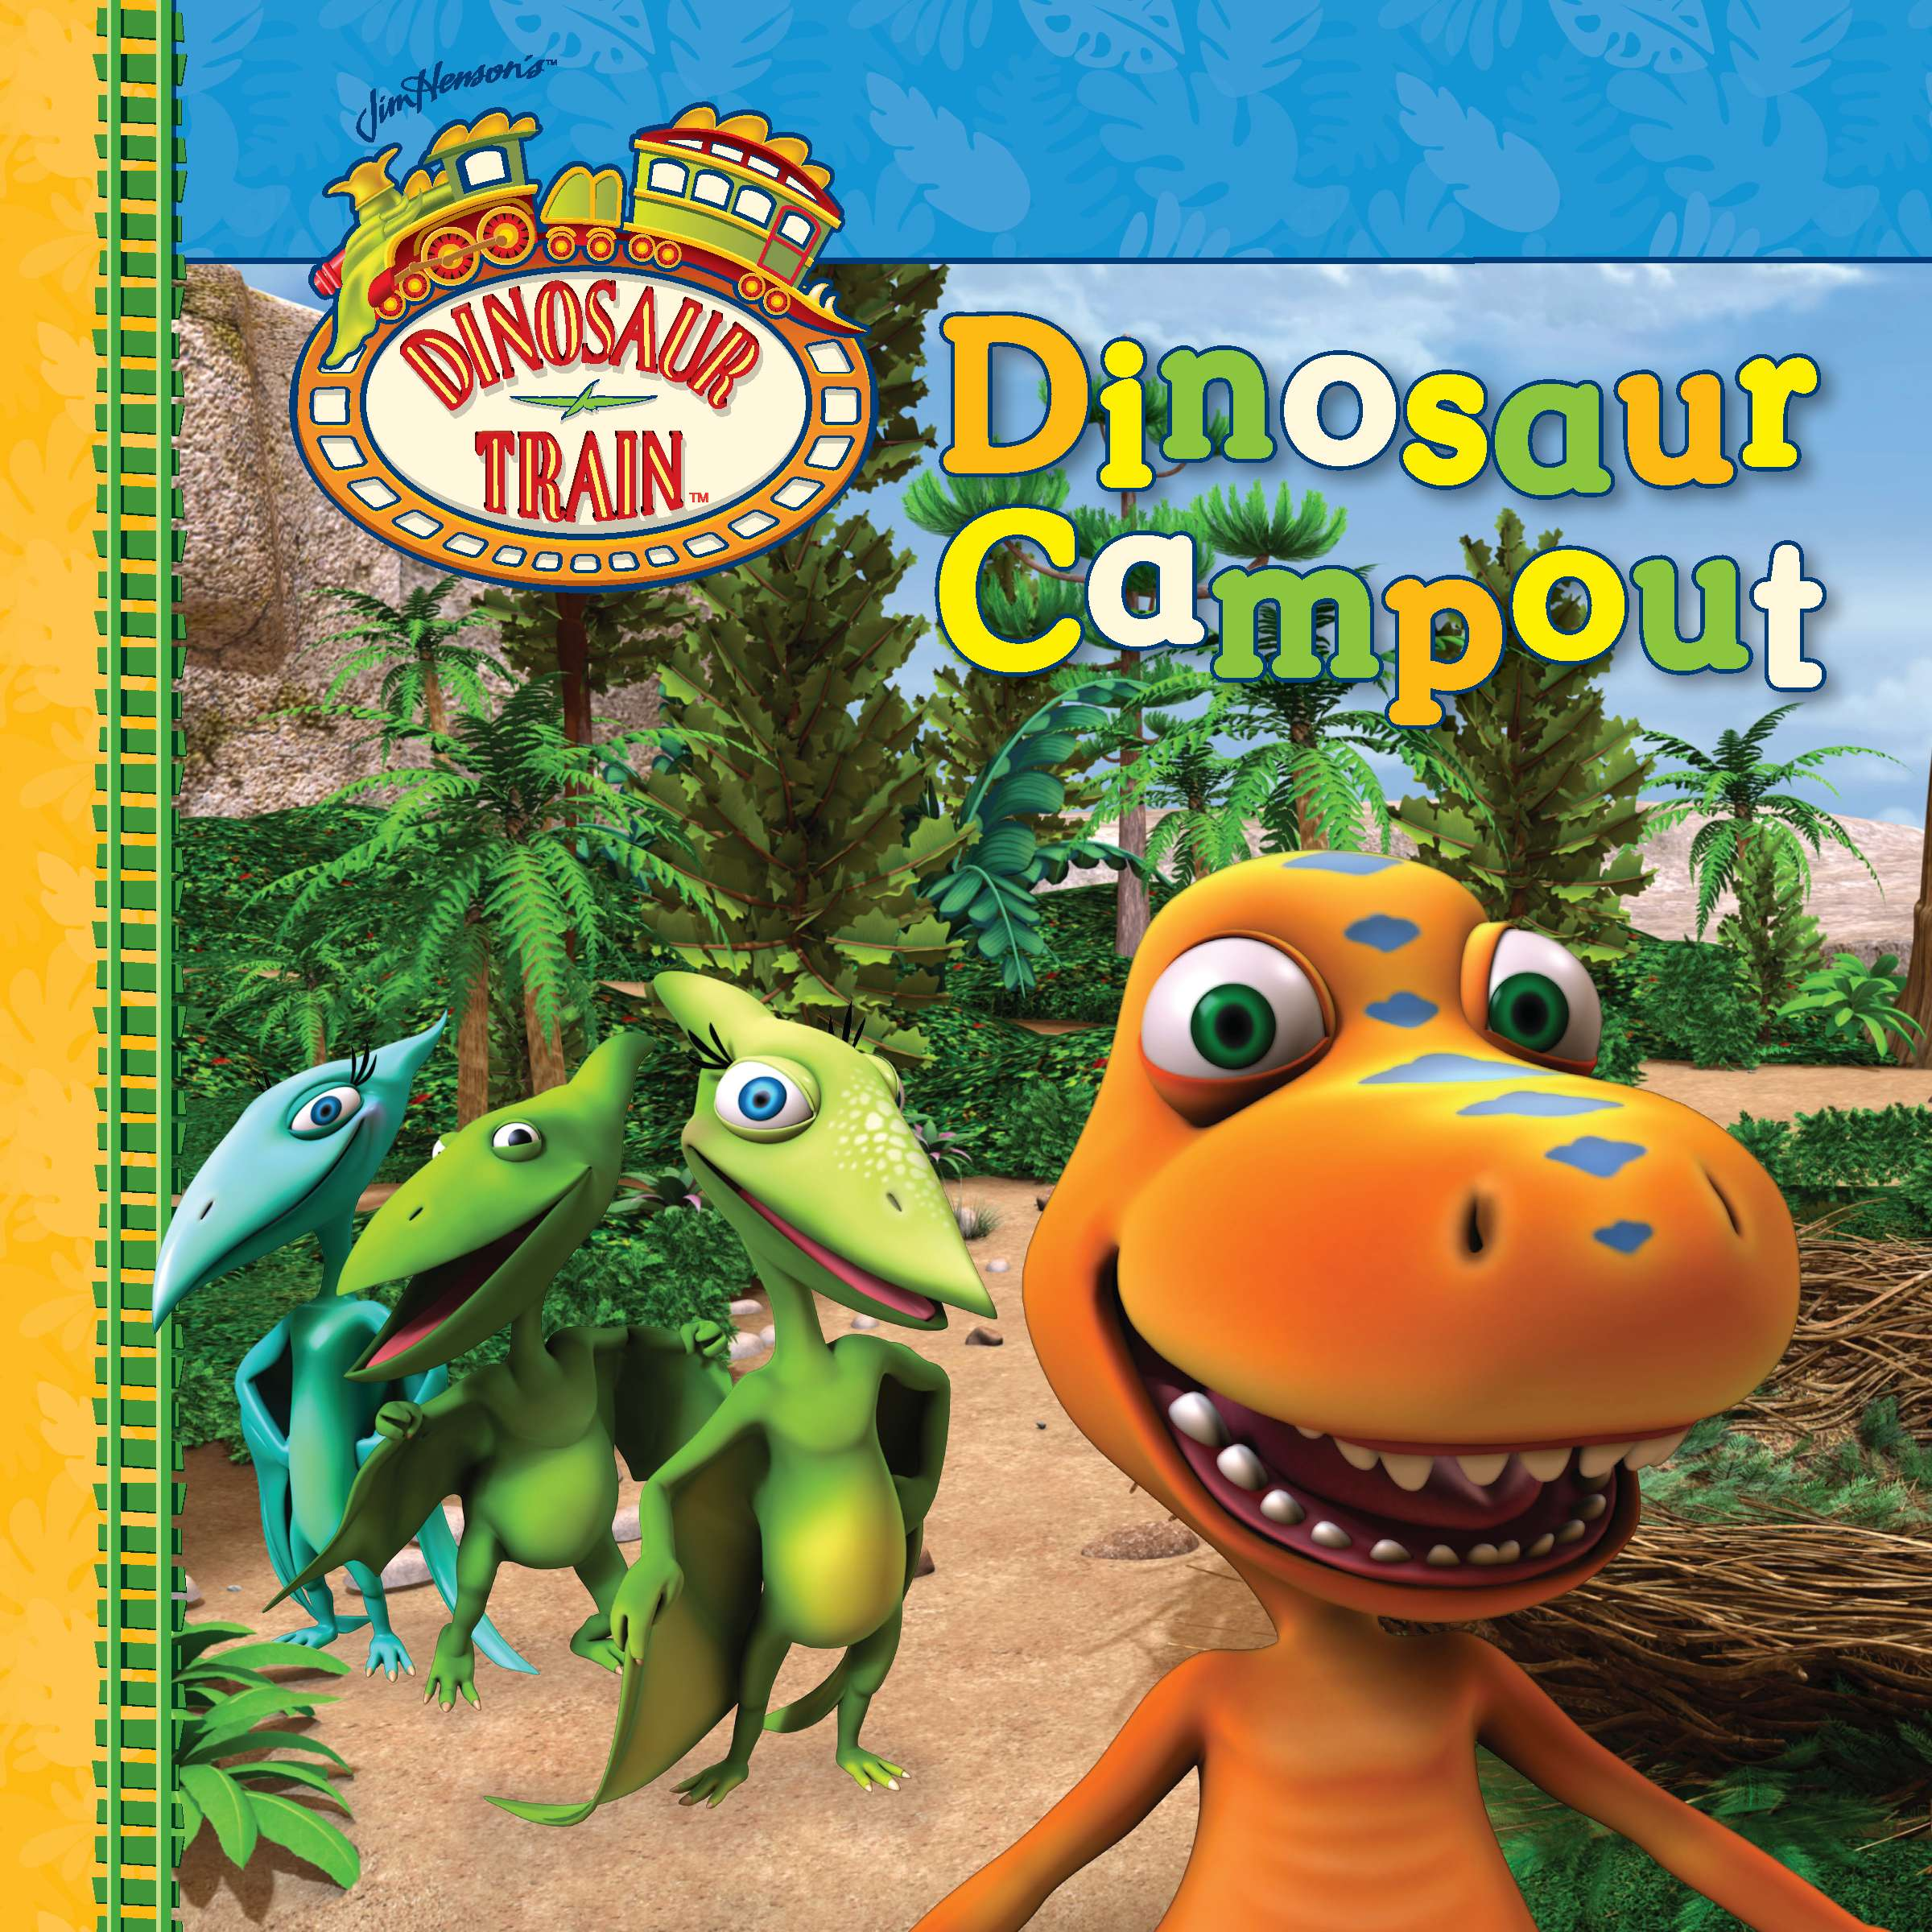 This is a picture of Adorable Dinosaur Train Pictures